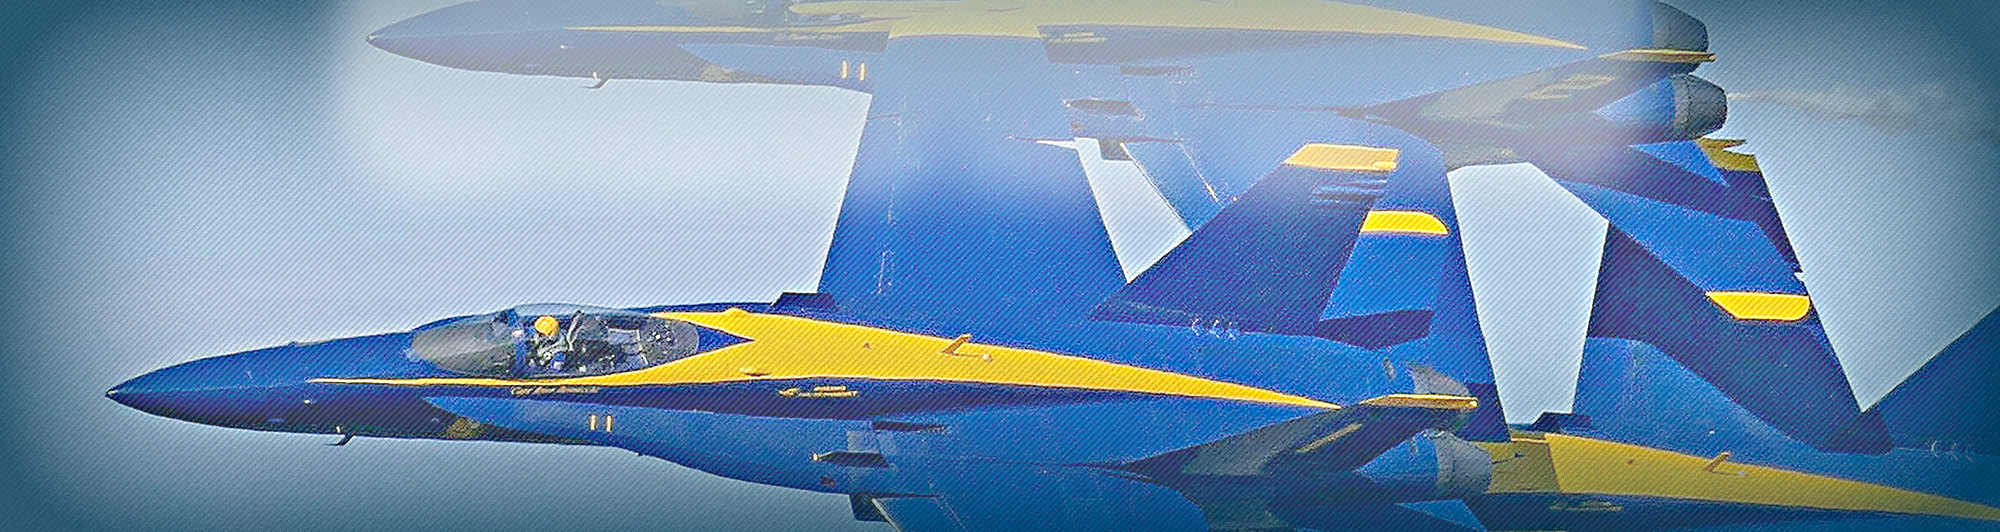 blue-angels-02.jpg